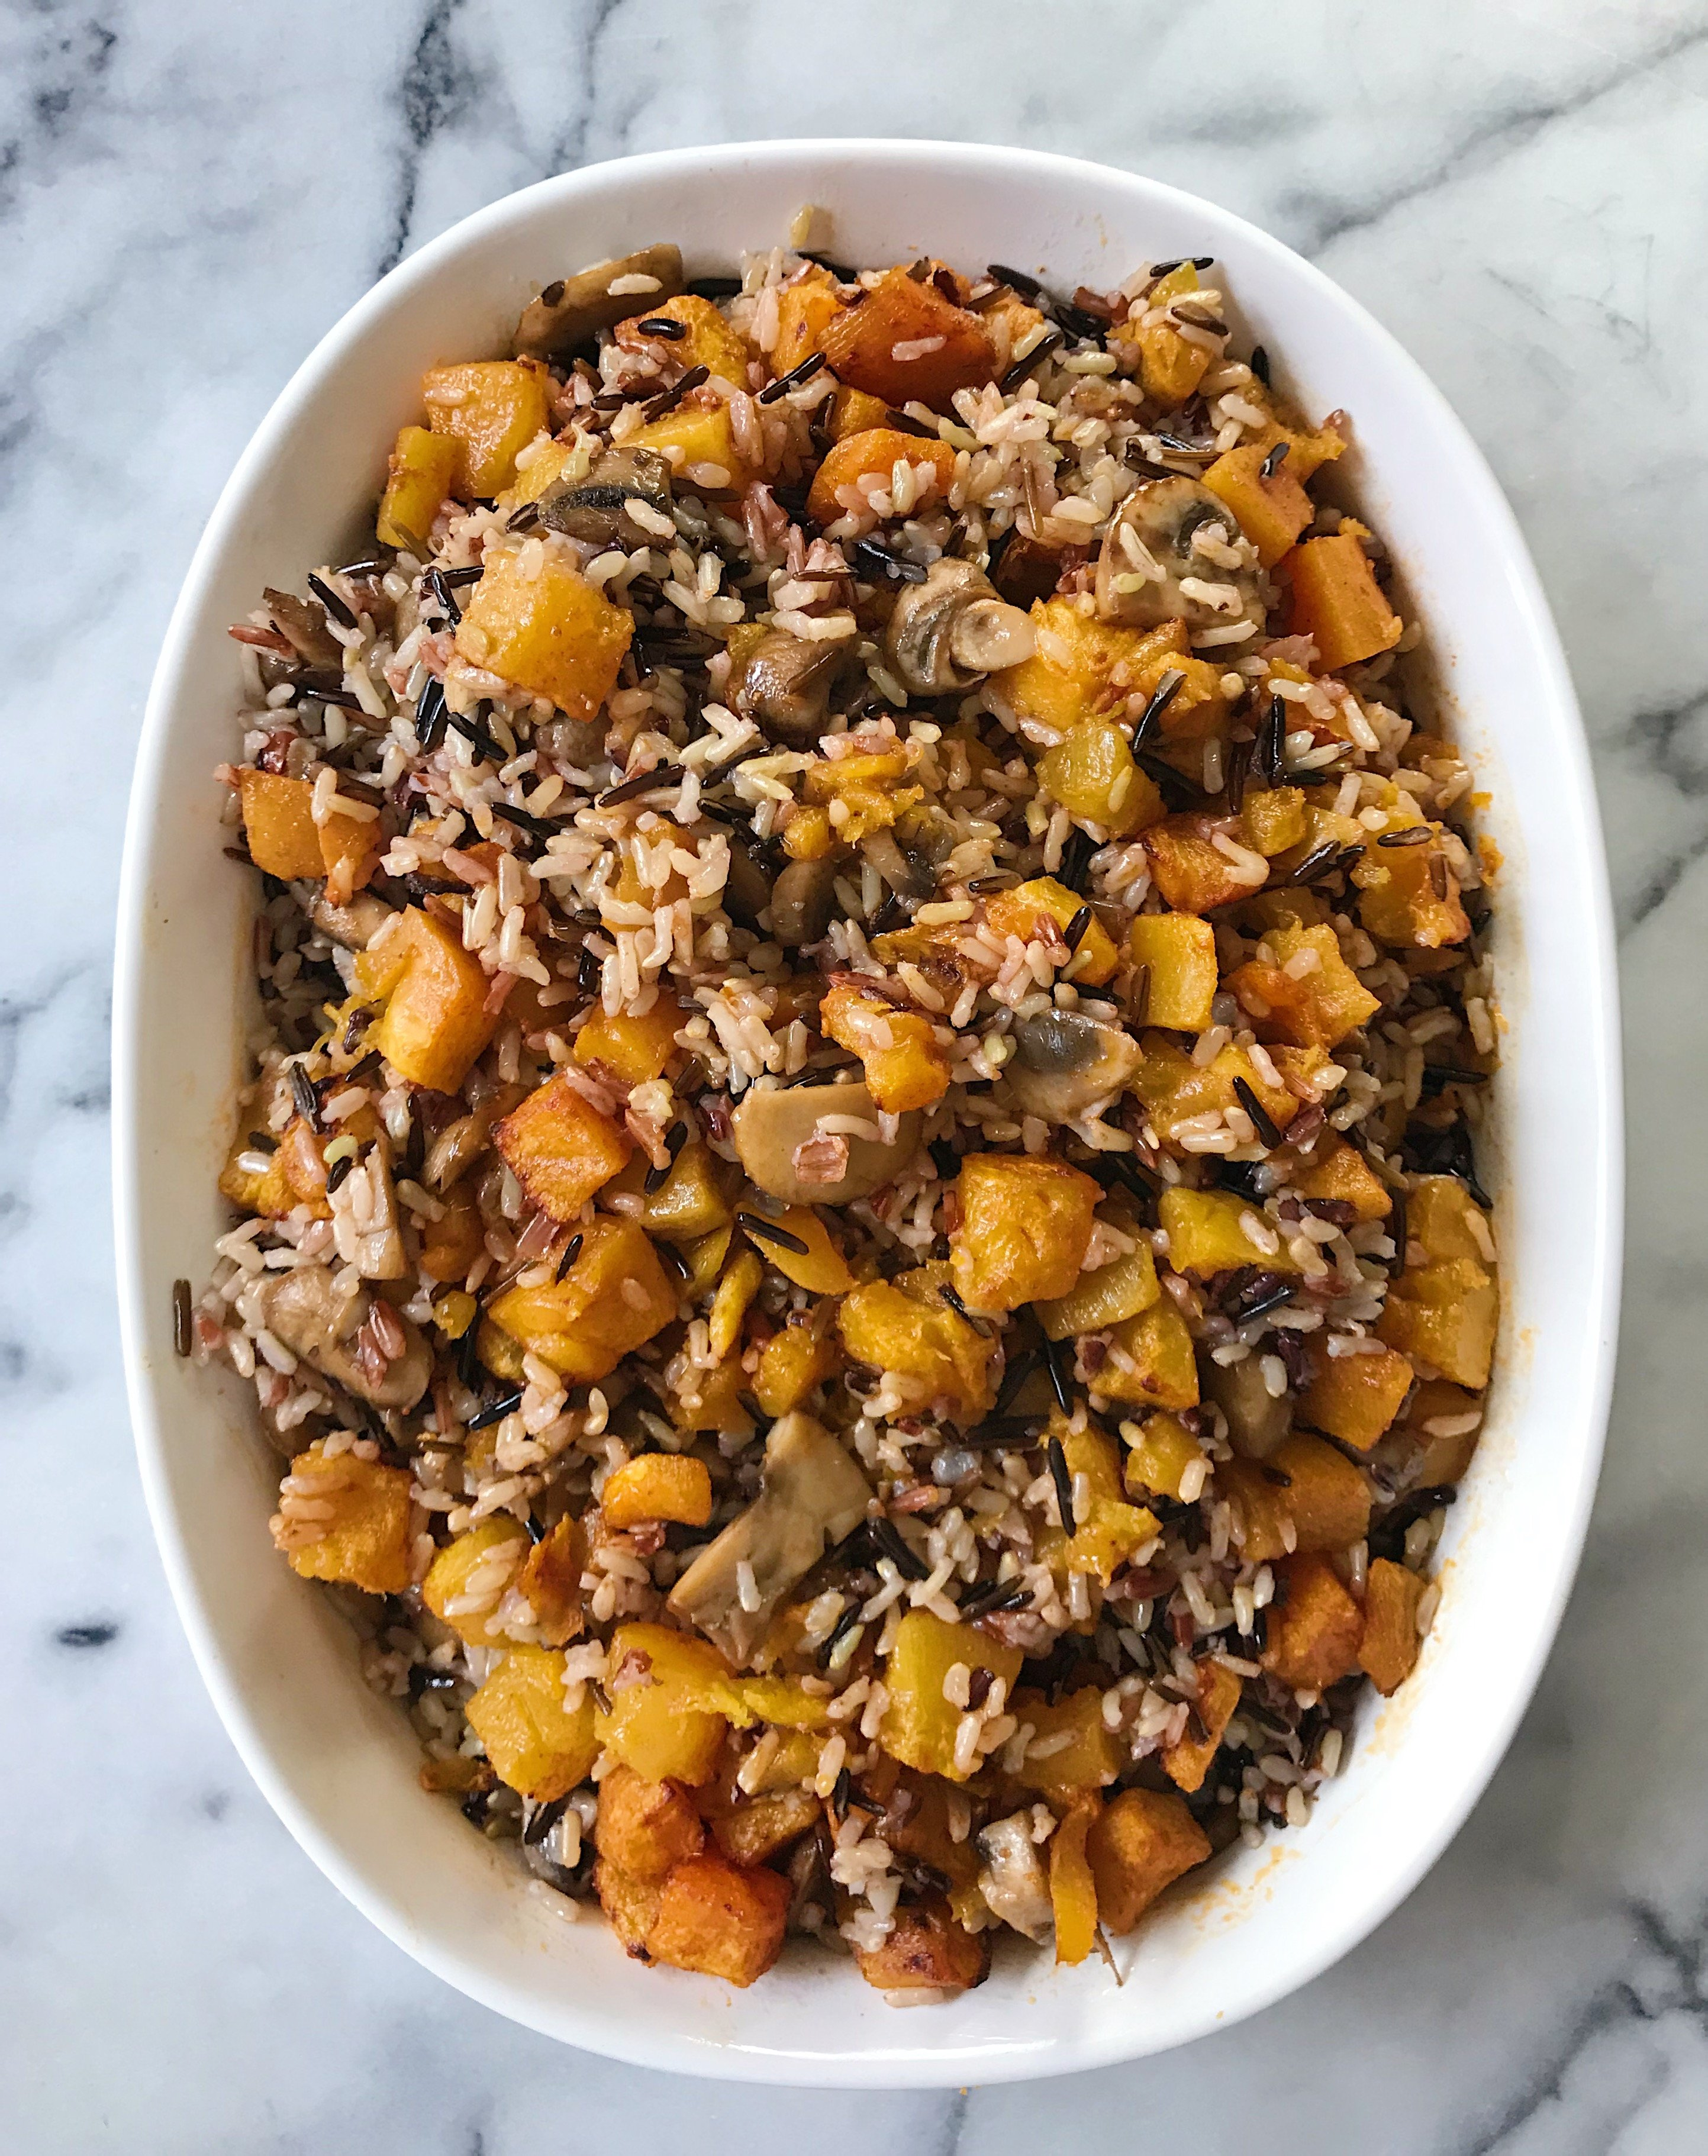 Baked Wild Rice with Veggies gluten free #glutenfreerecipes www.healthygffamily.com